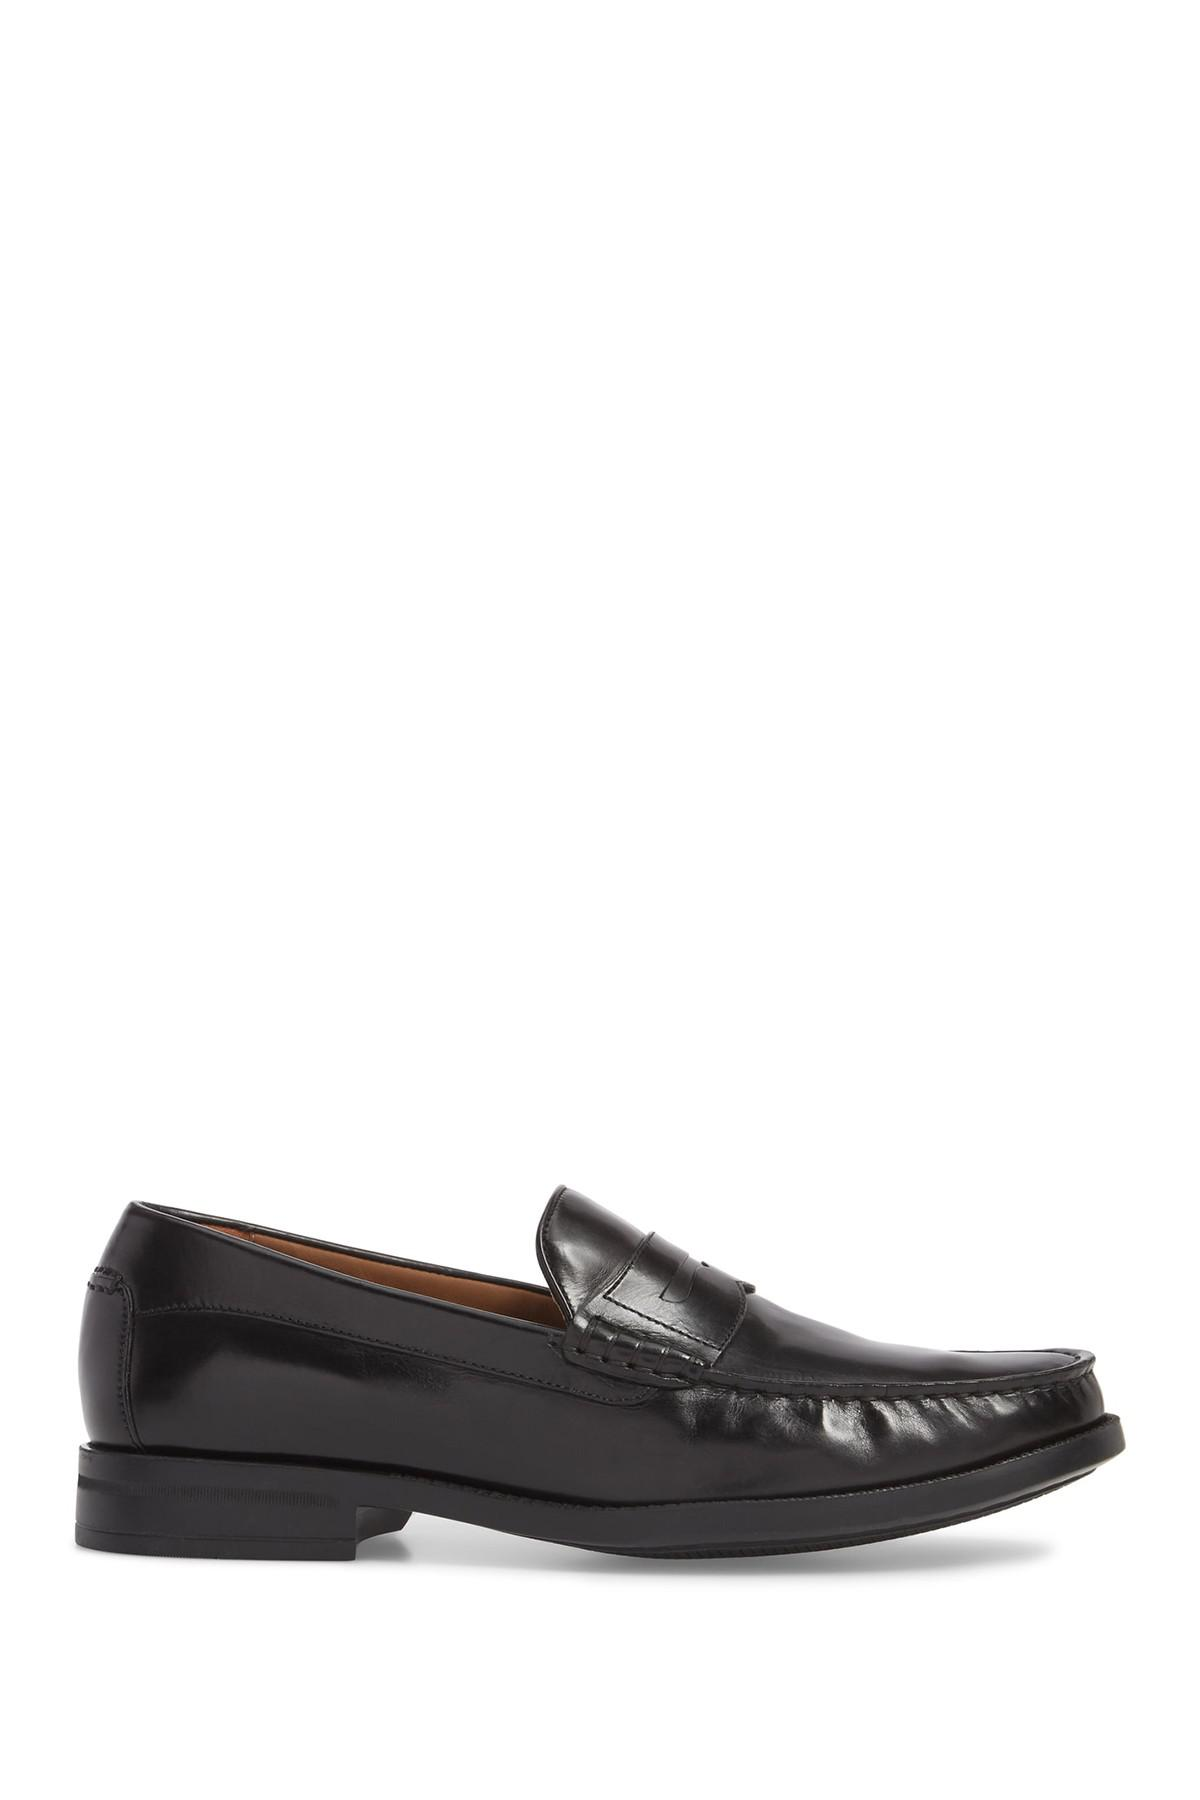 731e598f398 Johnston   Murphy - Black Chadwell Penny Loafer for Men - Lyst. View  fullscreen